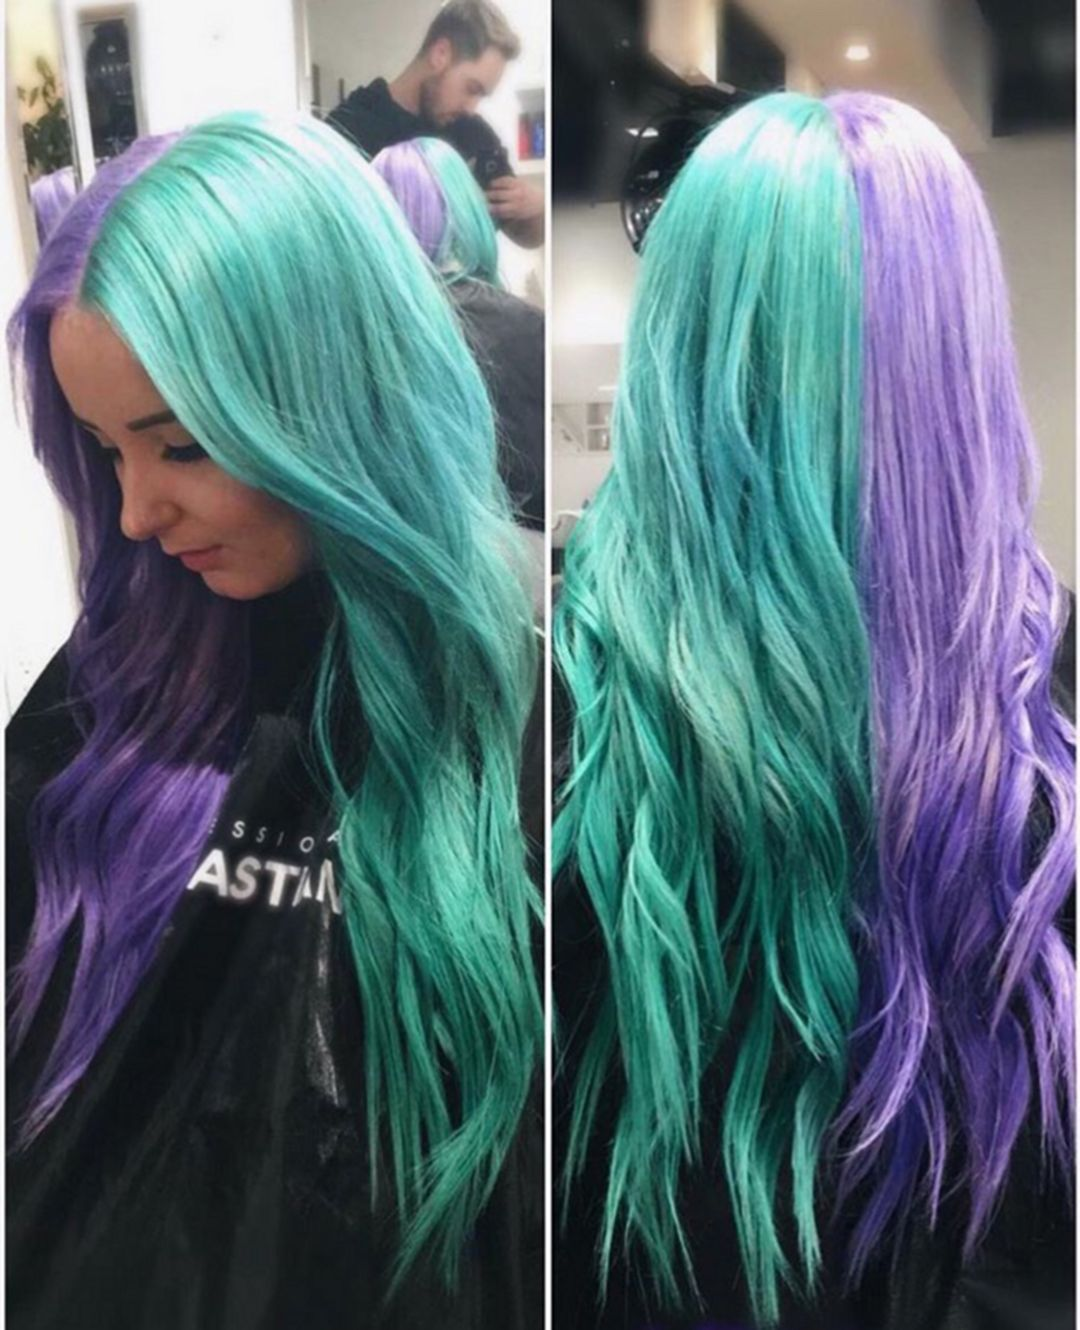 35 Unique Half And Half Hair Color Ideas For Cute Women Uniq Log Half Colored Hair Half And Half Hair Half Dyed Hair